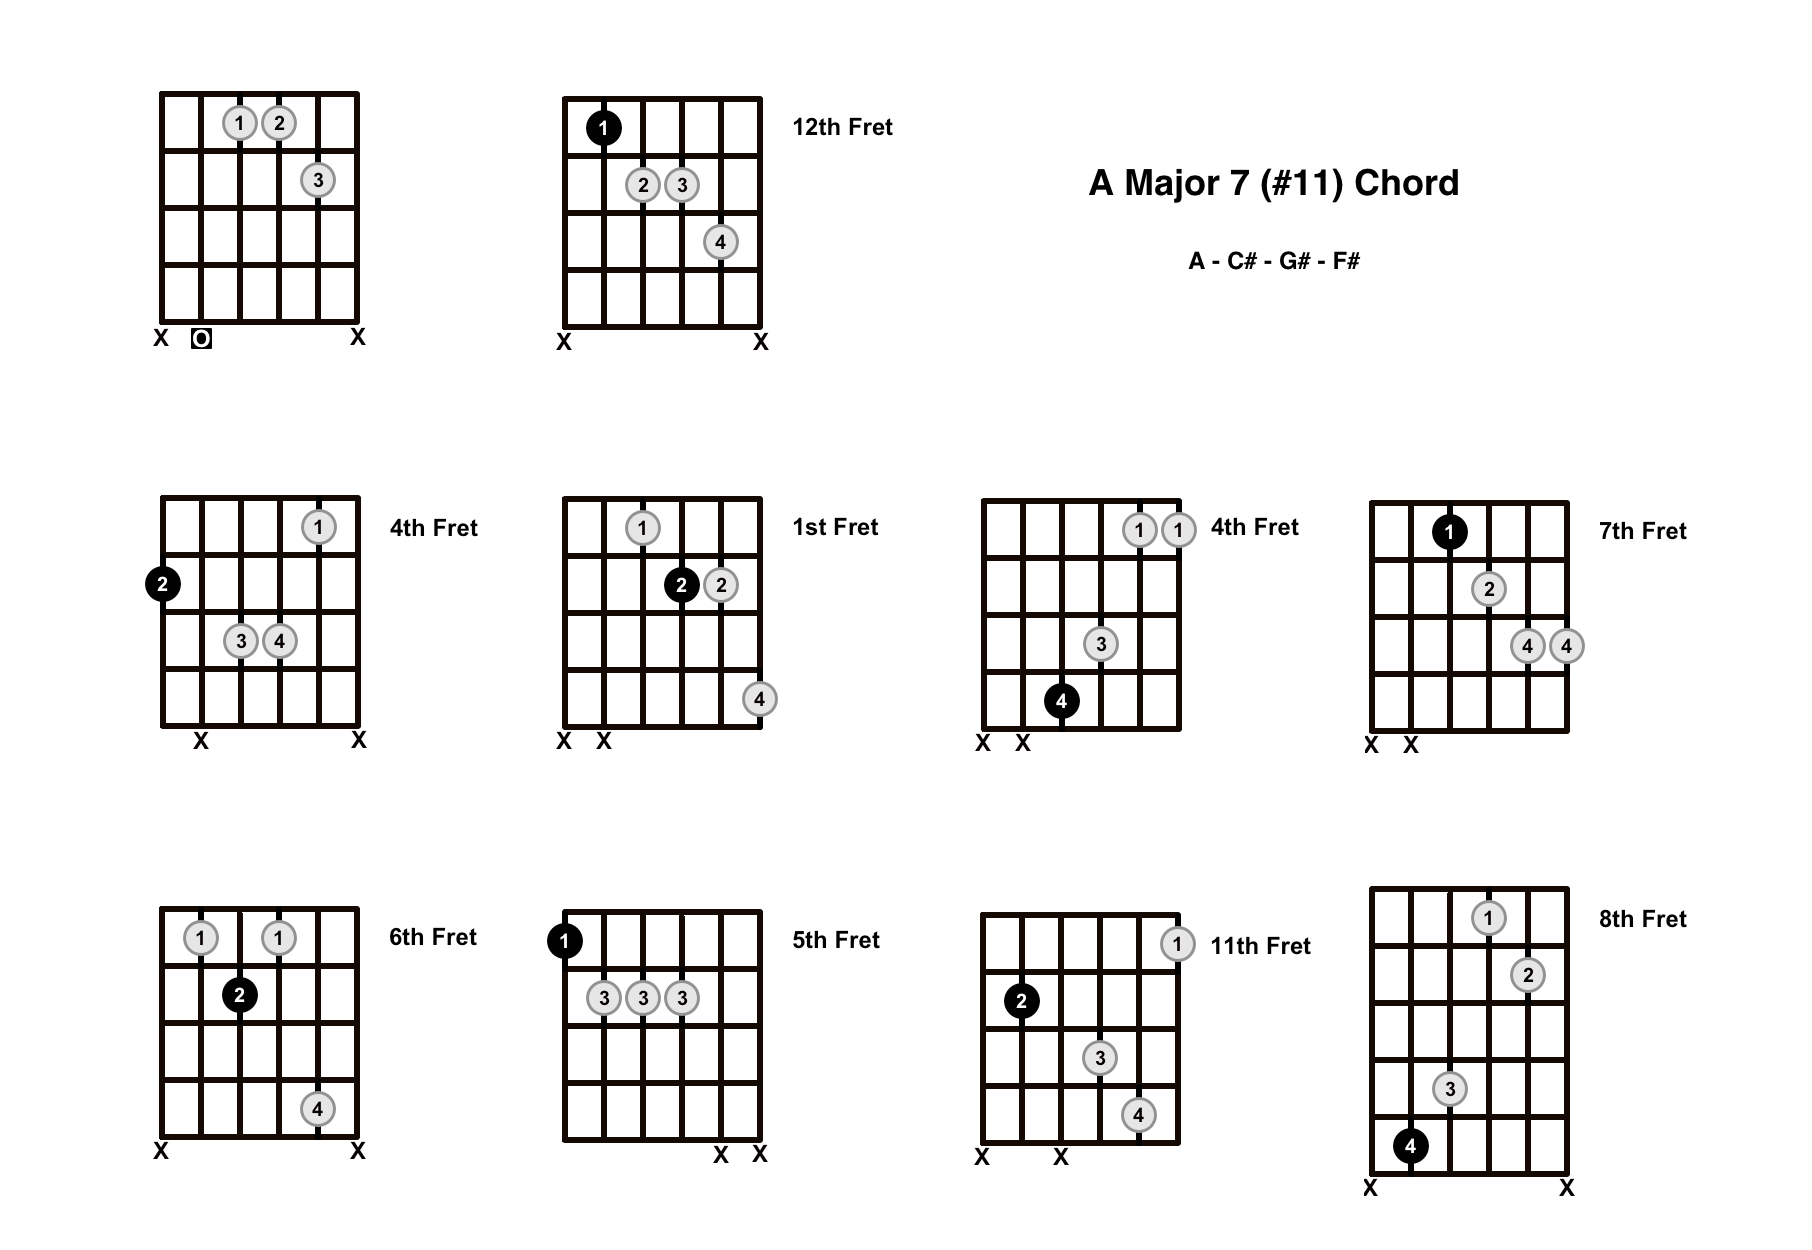 Amaj7#11 Chord On The Guitar (A Major 7 #11) – Diagrams, Finger Positions and Theory